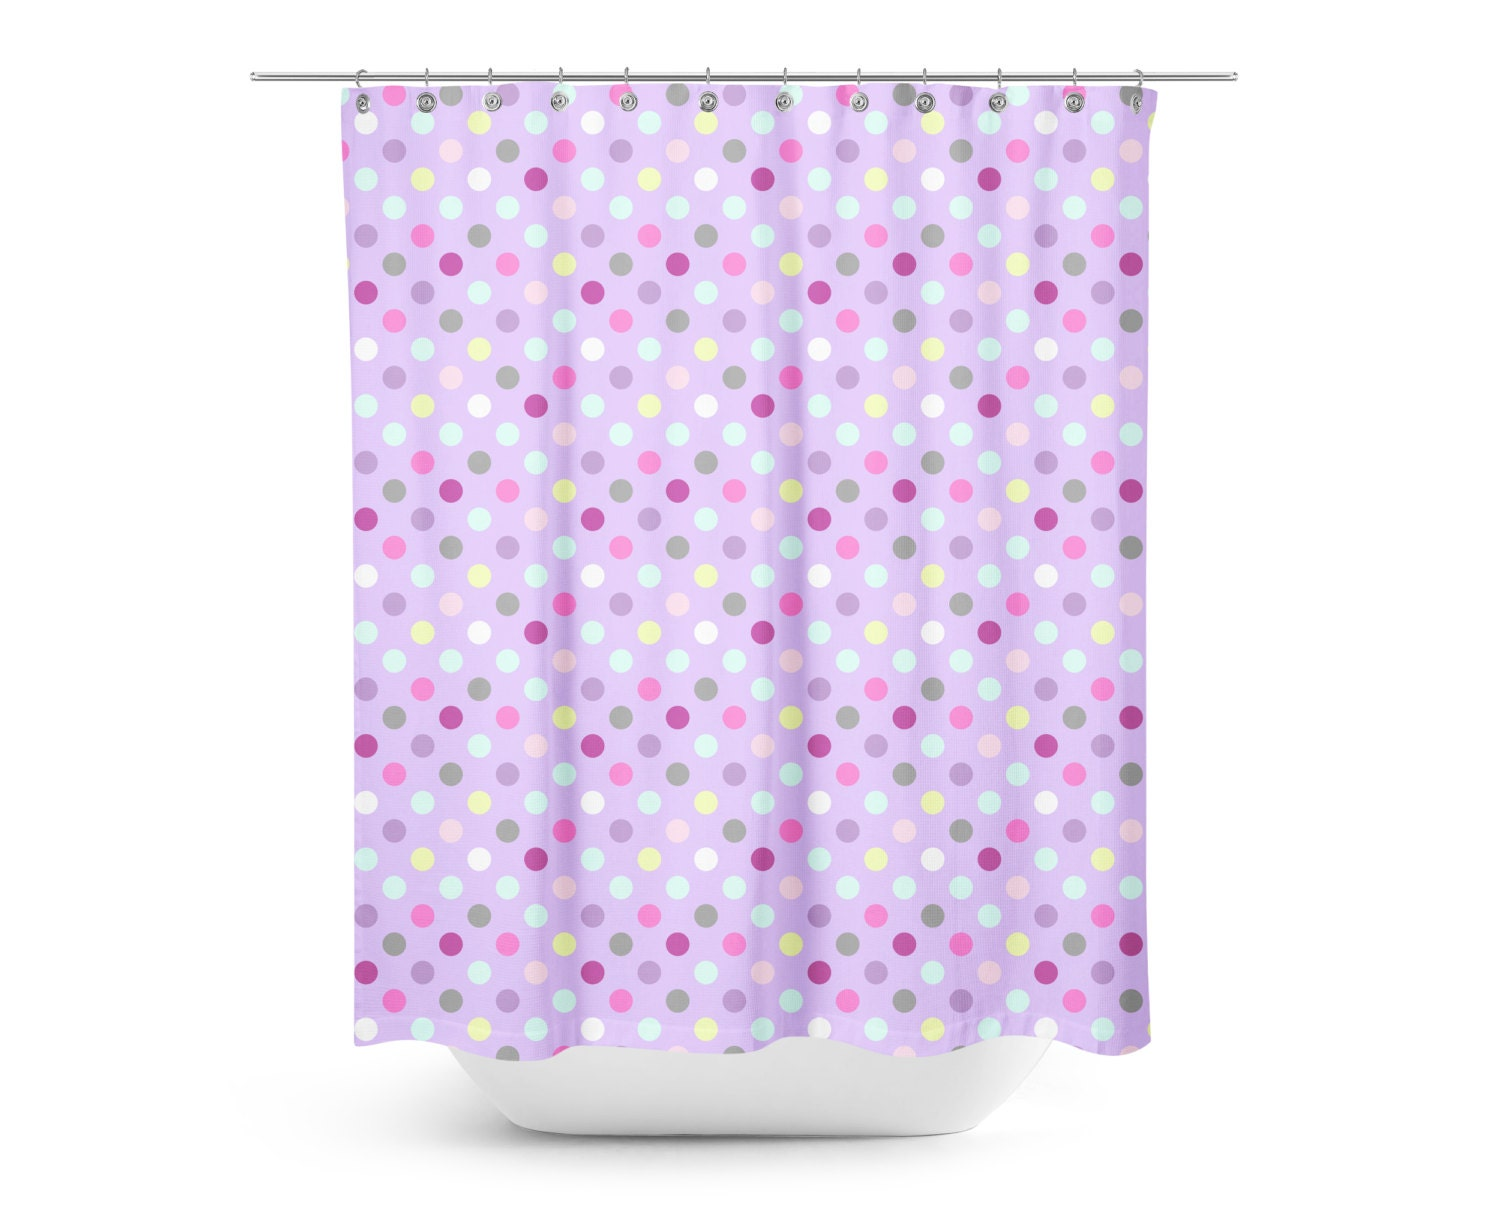 Purple Multi Colored Polka Dot Shower Curtain Kids